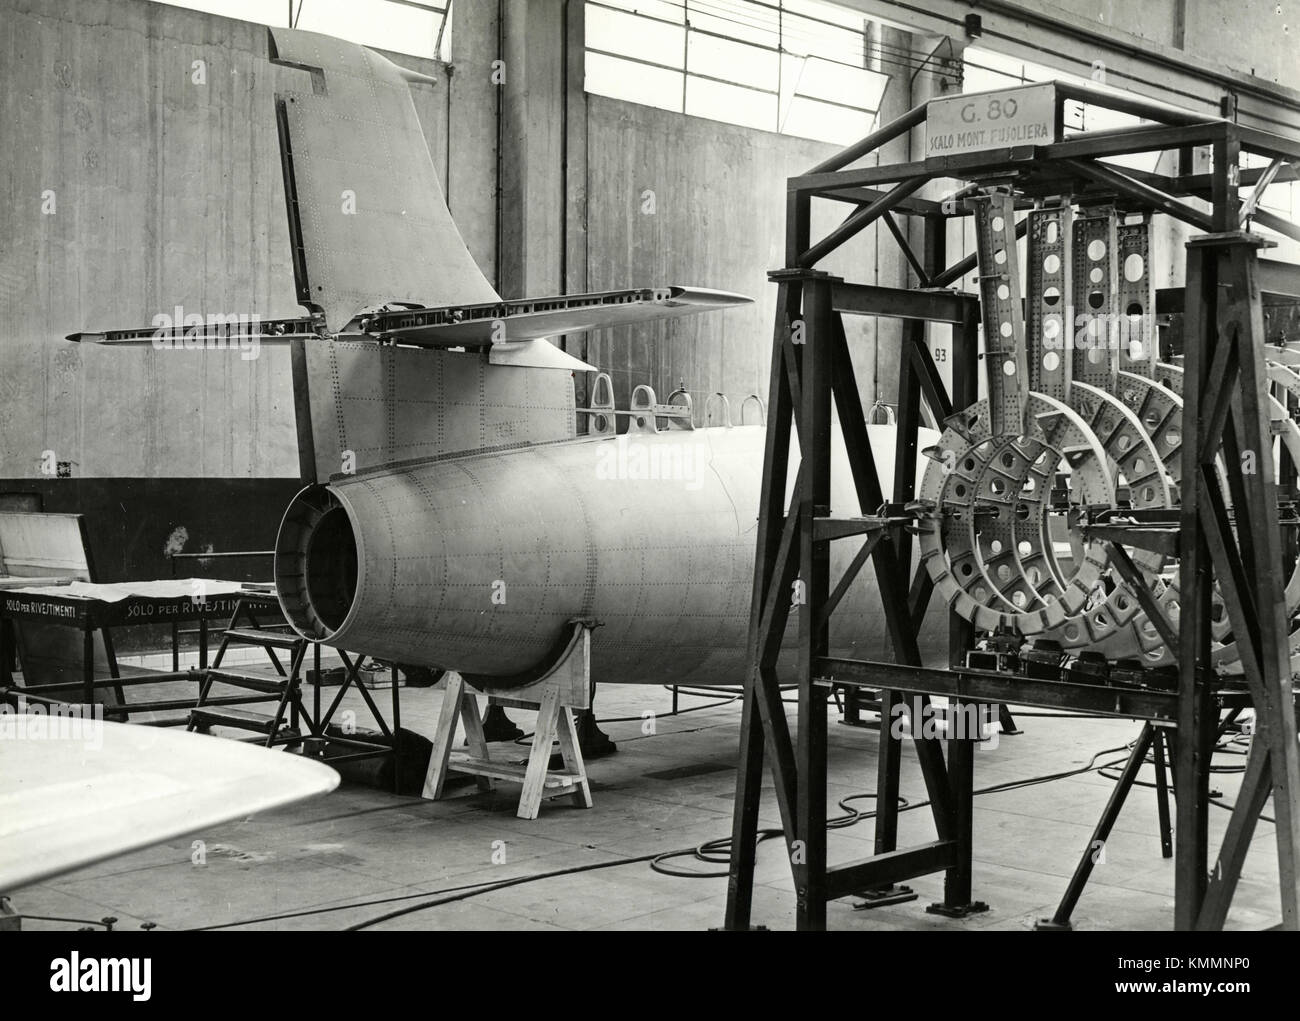 Assembling the fuselage of FIAT G.80 airplane, Italy 1950s - Stock Image